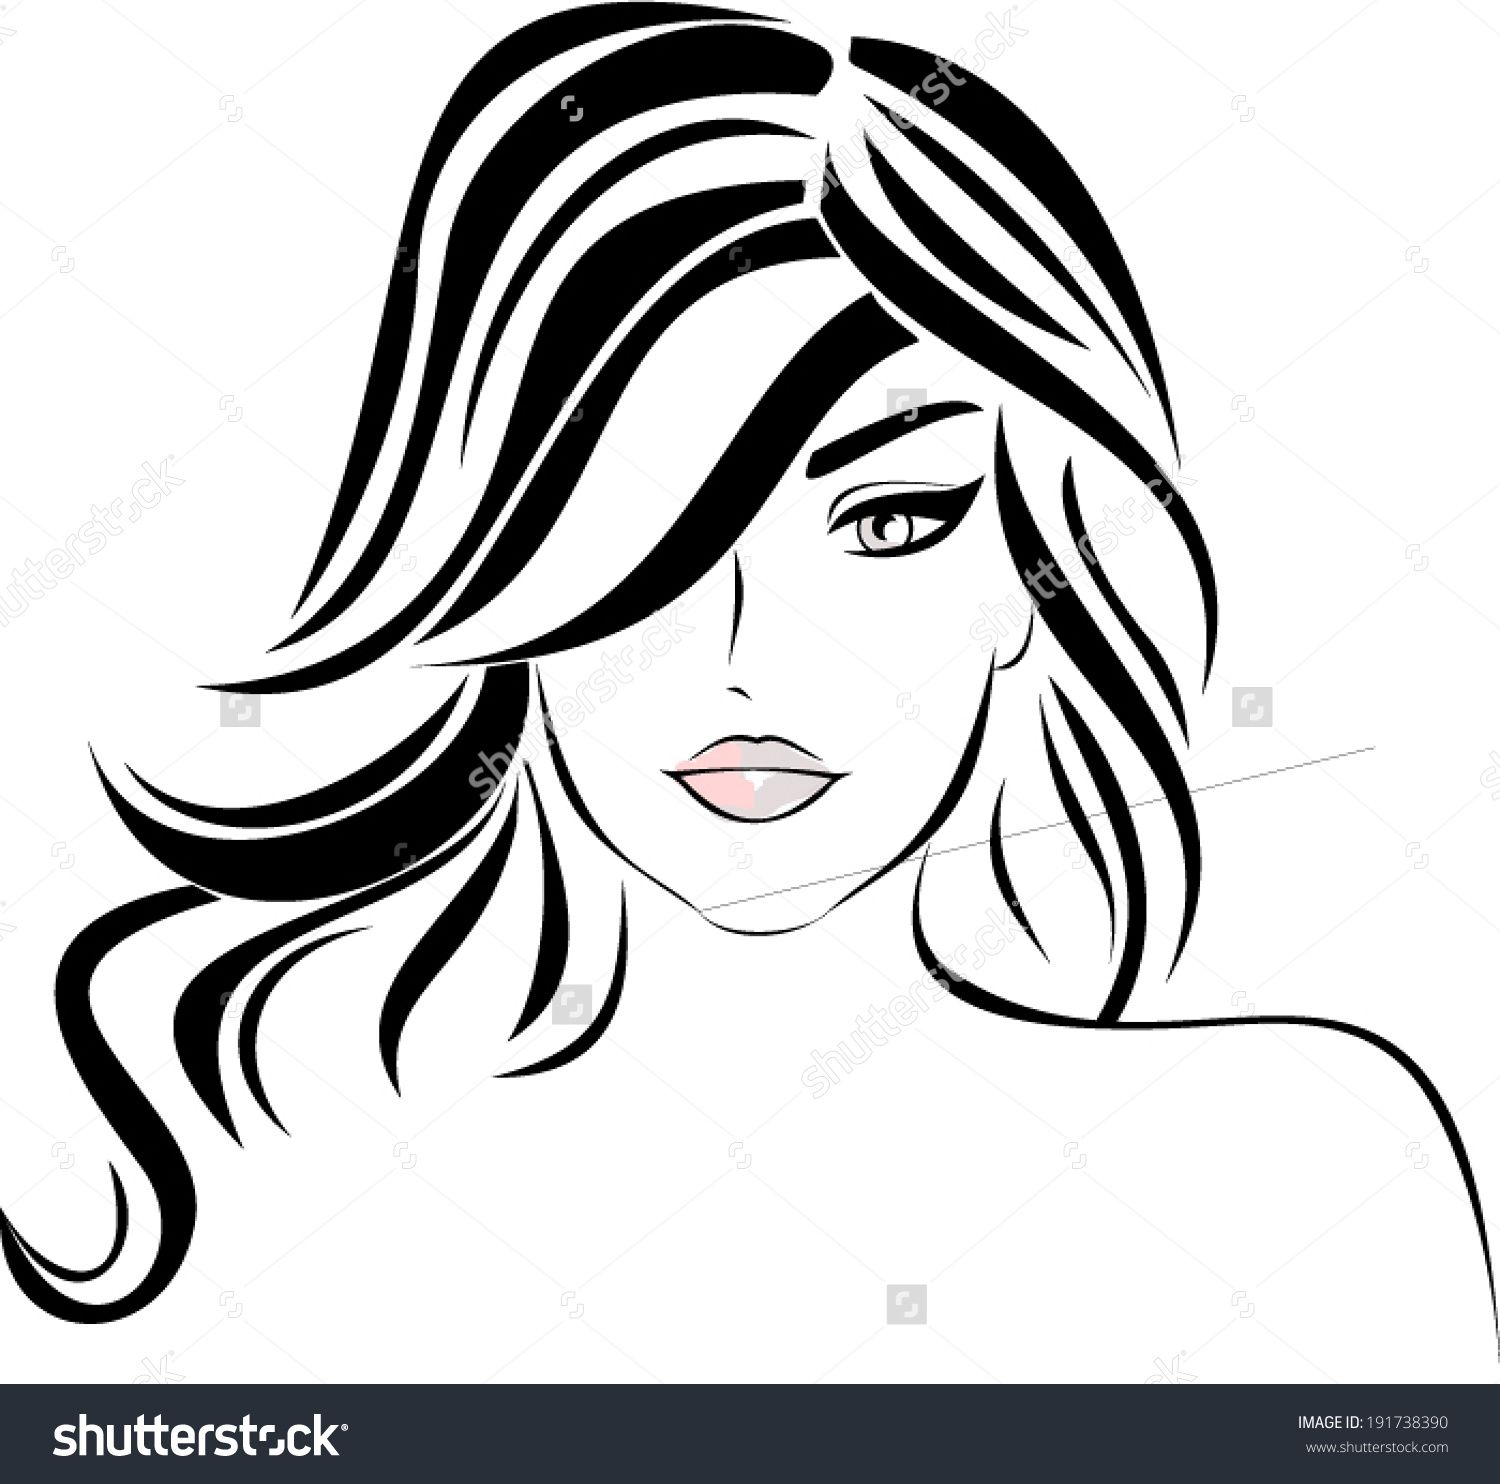 Stock Images similar to ID 145553431 - woman face. hand painted ...